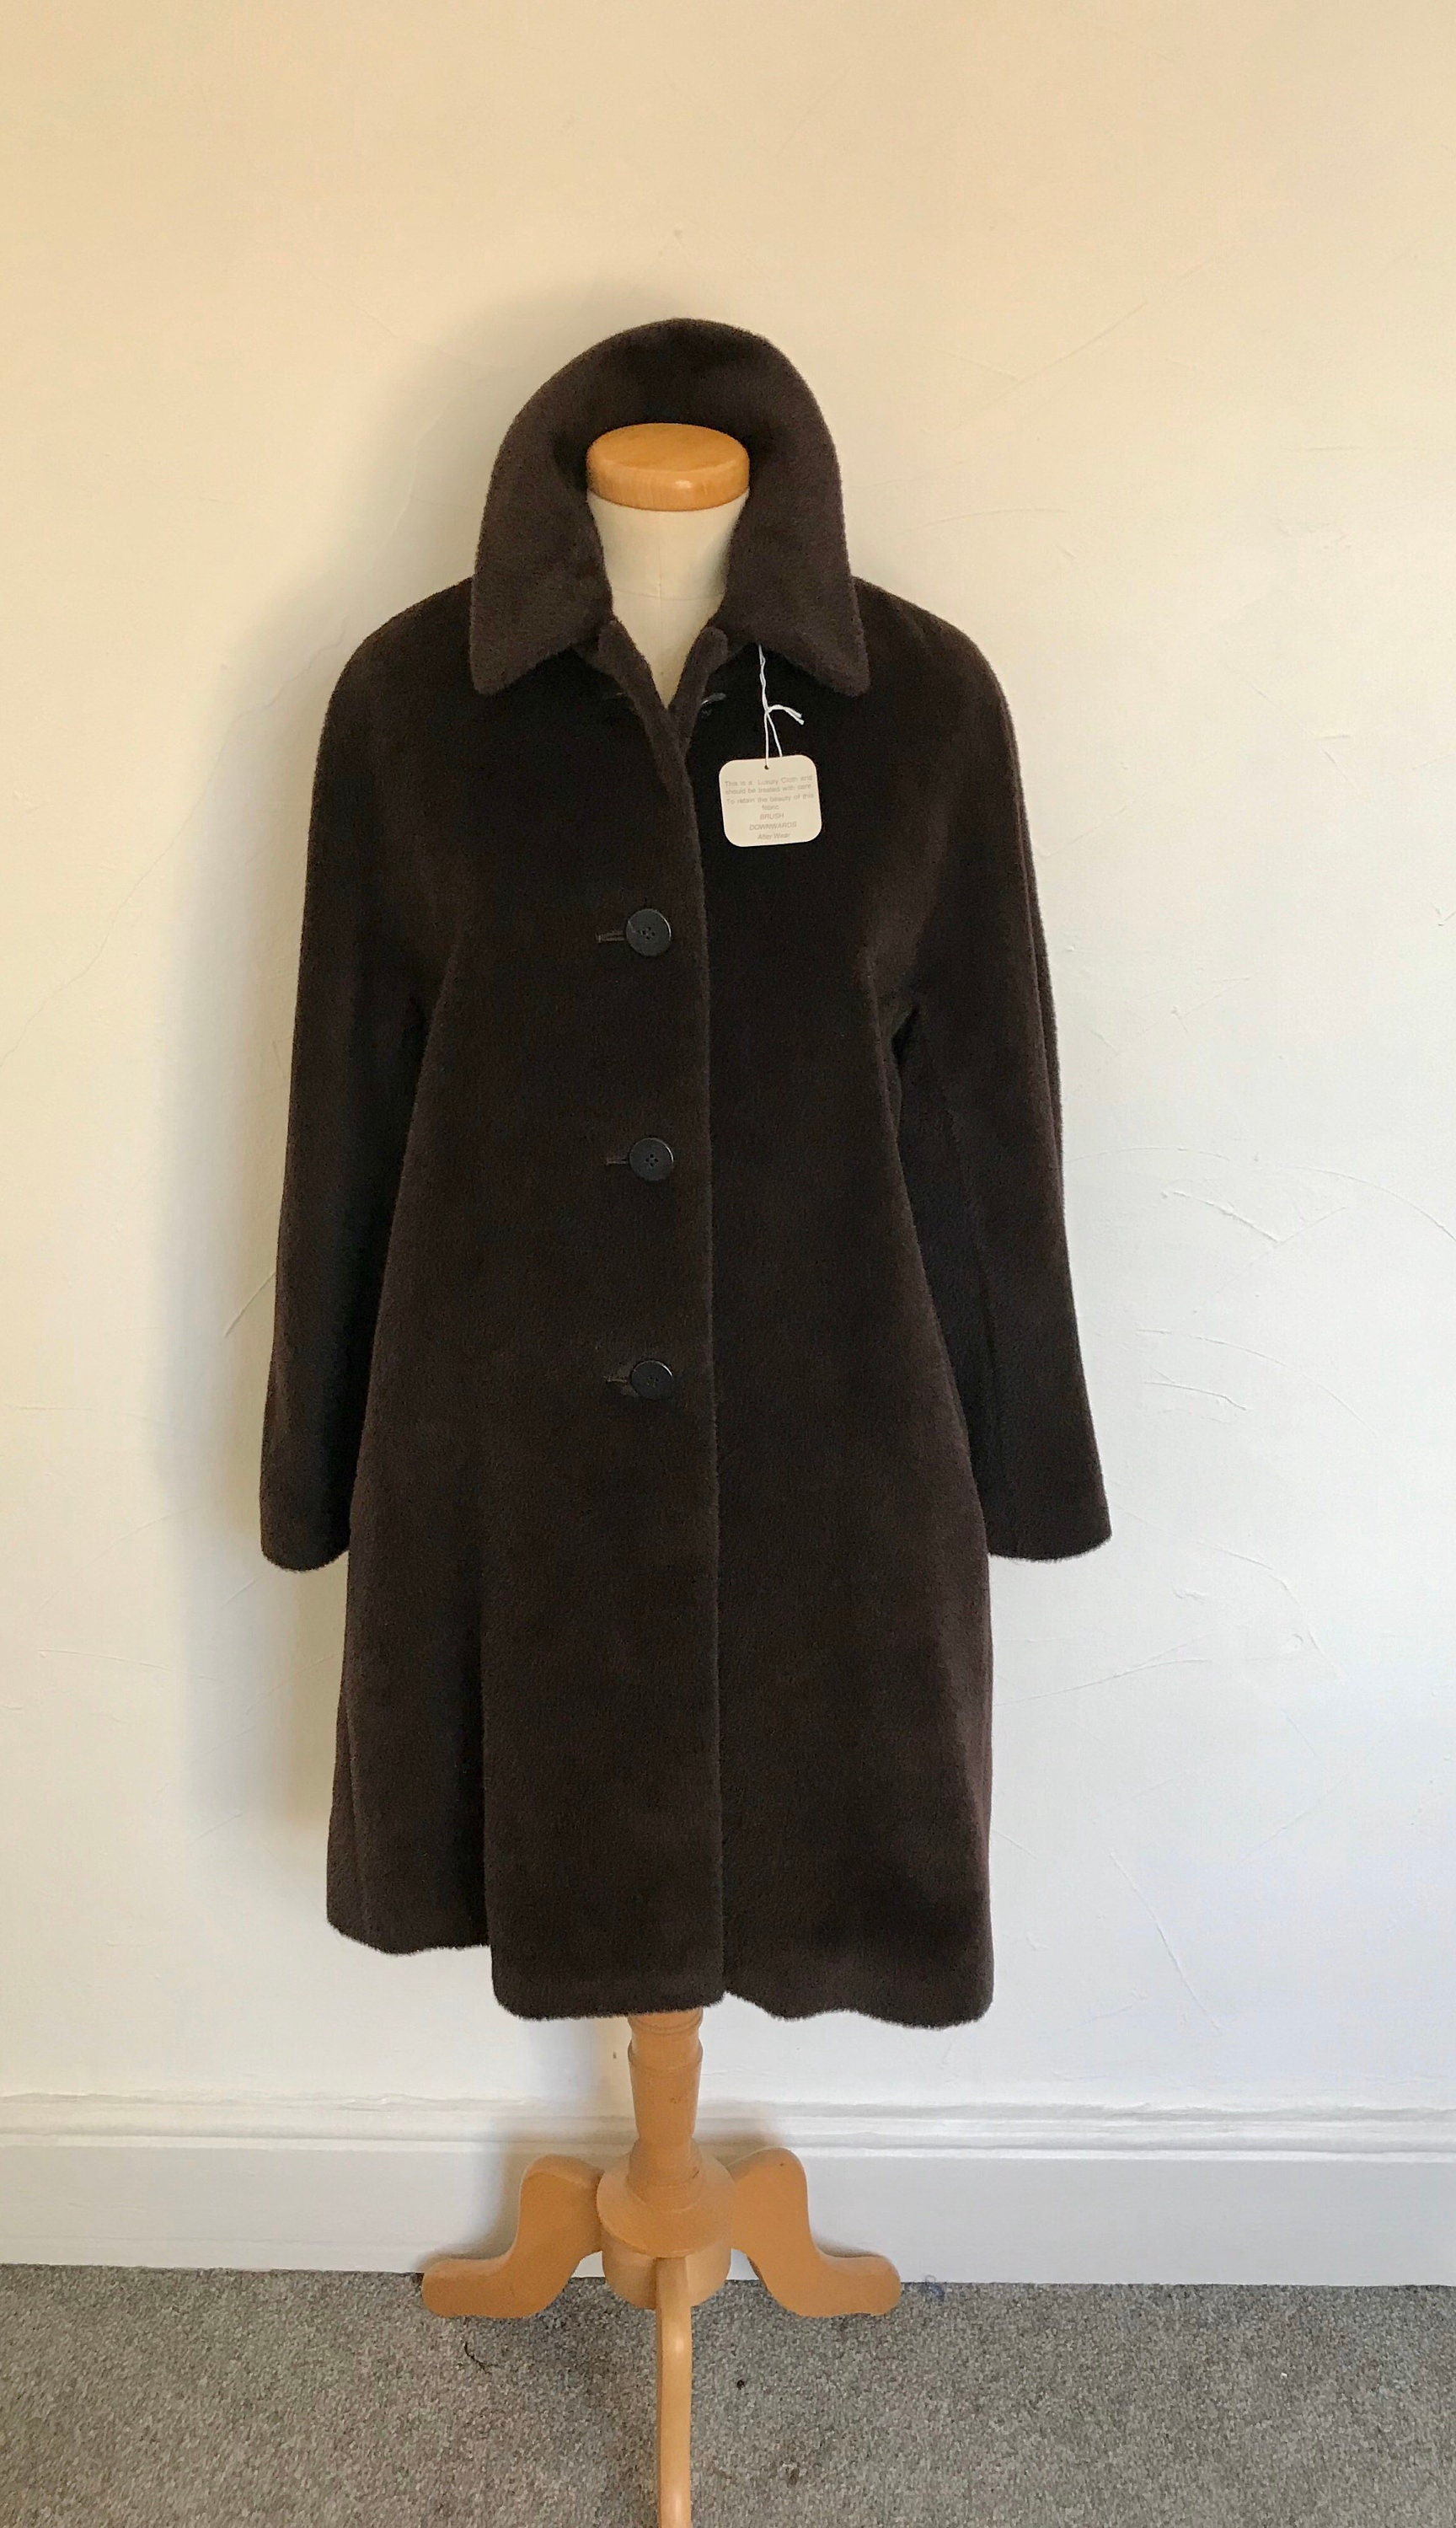 Vintage Austin Reed Duster Coat Italian Piacenza Pure Baby Llama Wool 3 4 Length Unworn Tagged